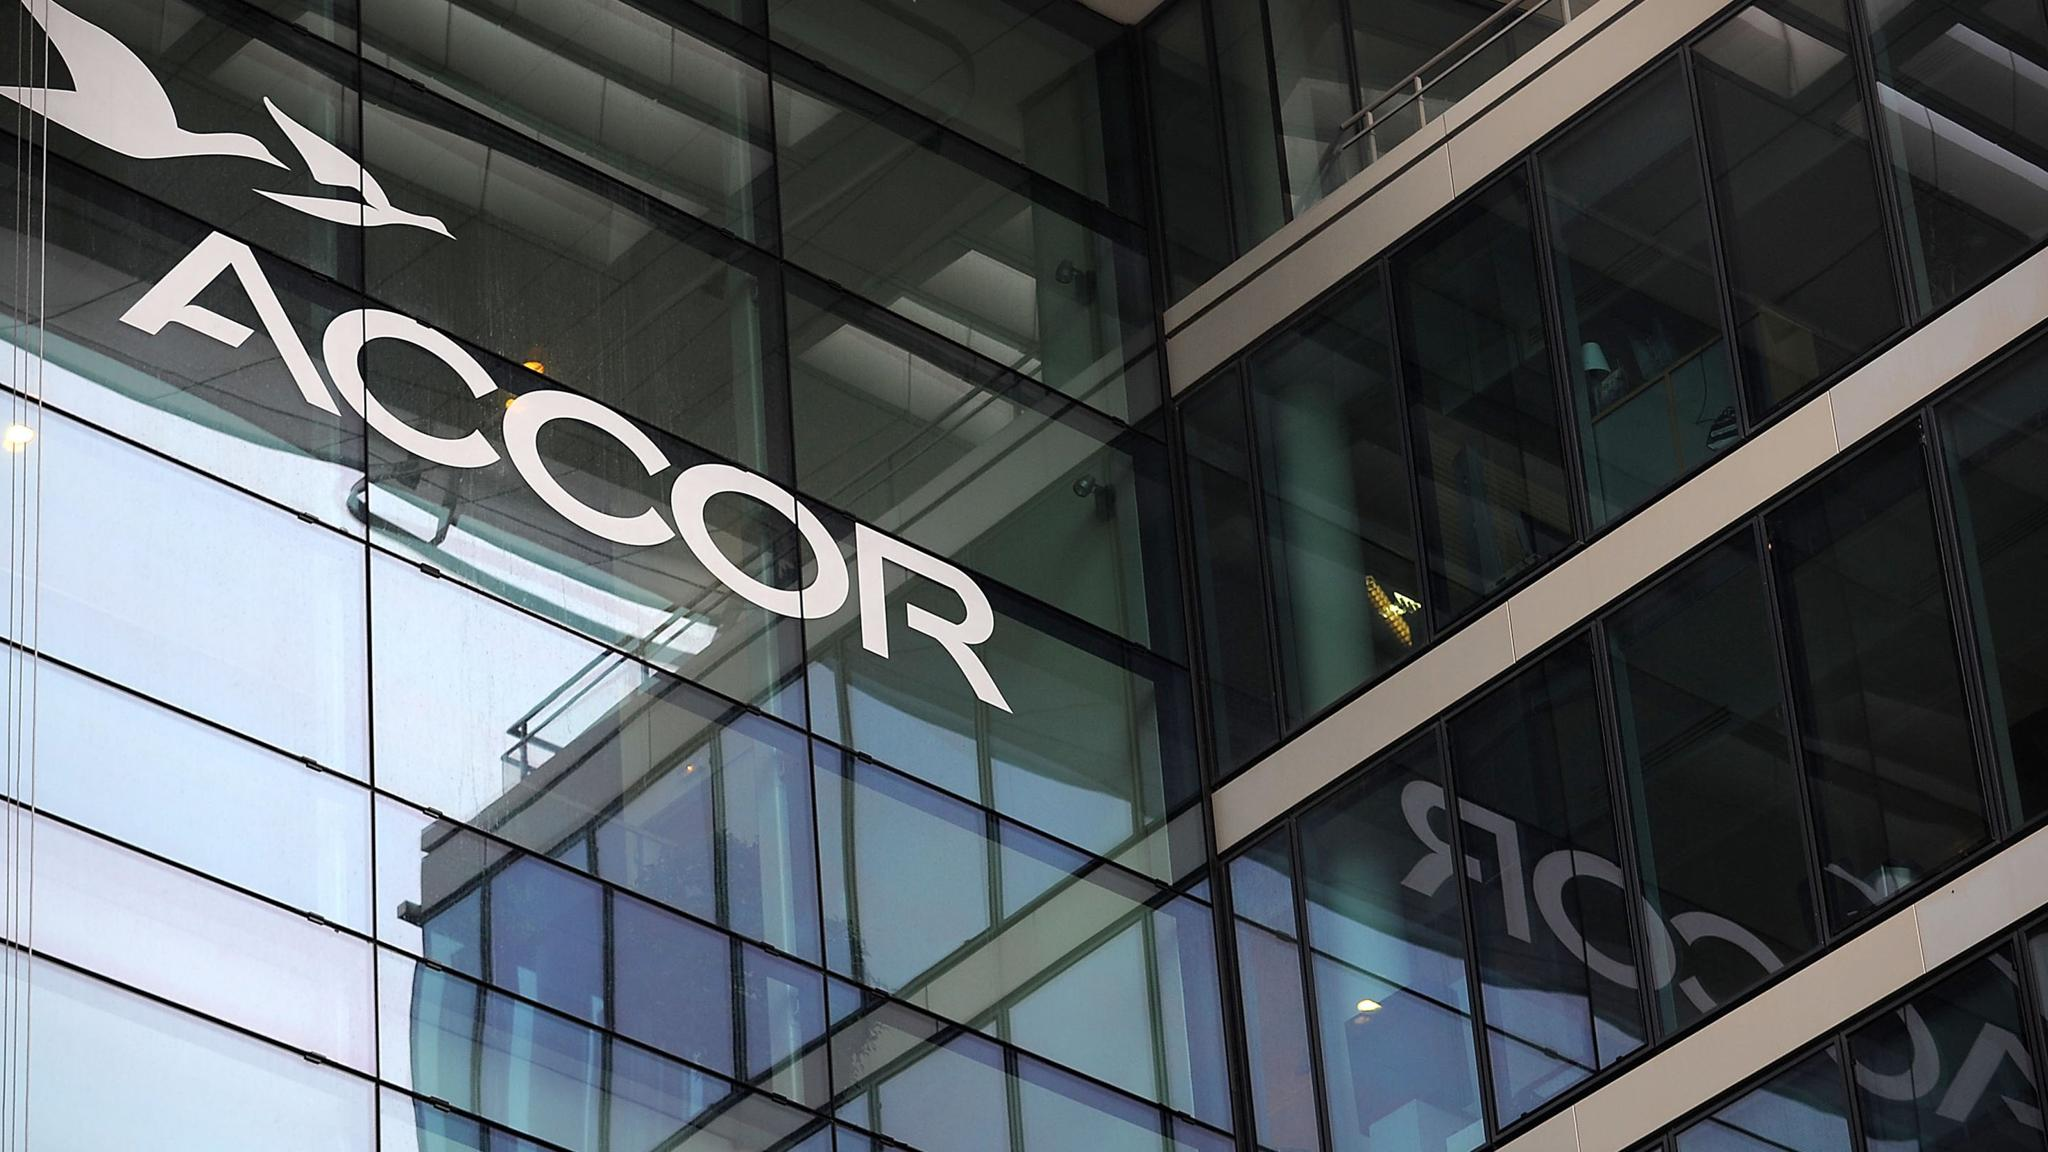 Accor Group Accor Expands Booking Service In Drive To Counter Online Agencies